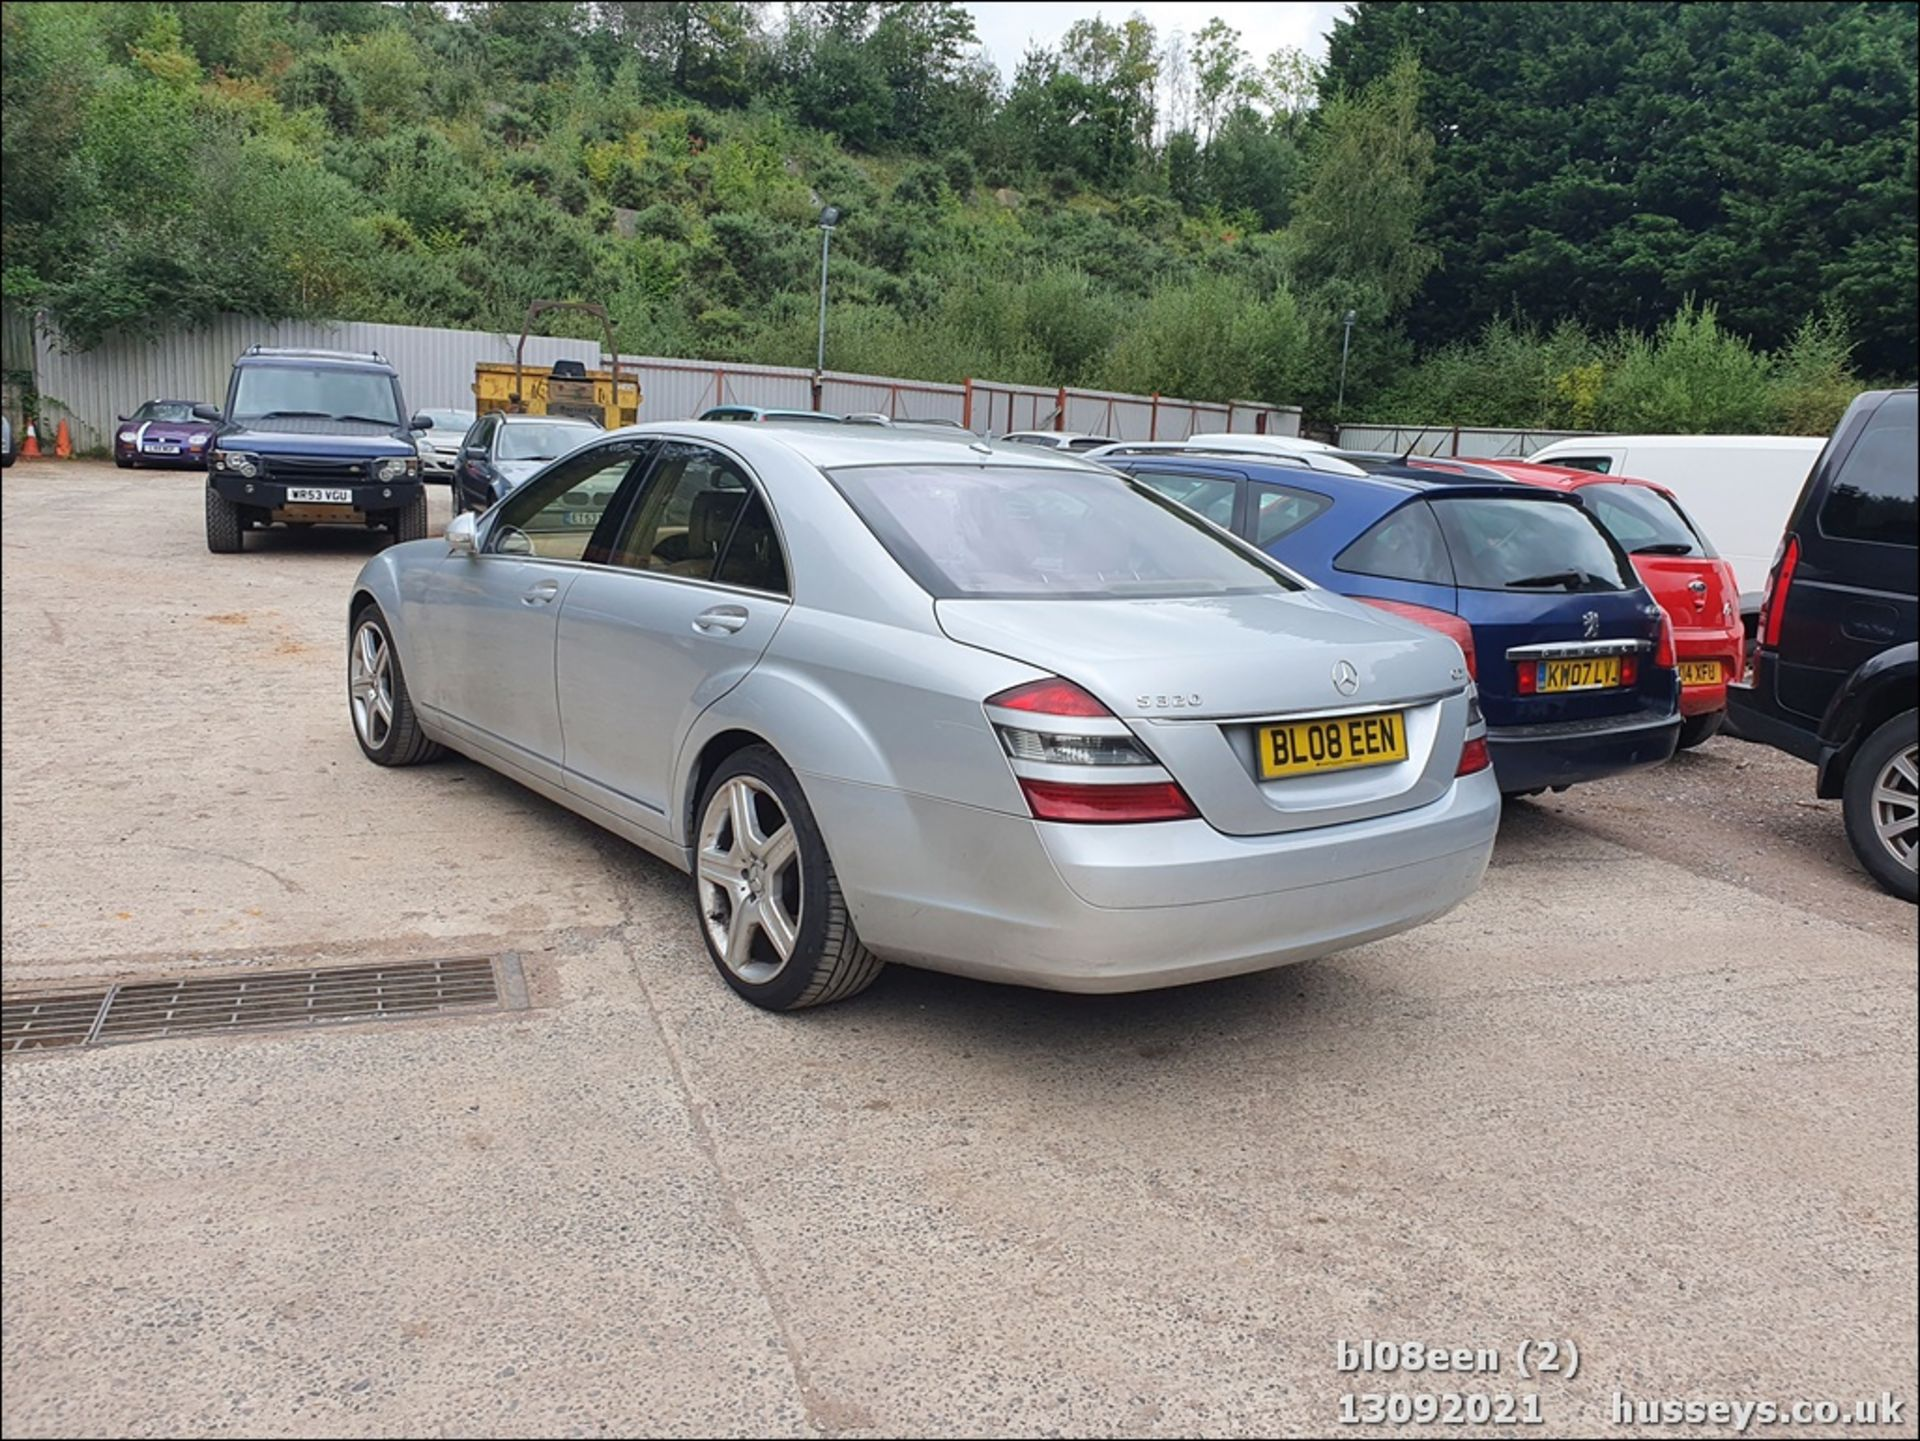 08/08 MERCEDES S320 CDI AUTO - 2987cc 4dr Saloon (Silver, 205k) - Image 2 of 16